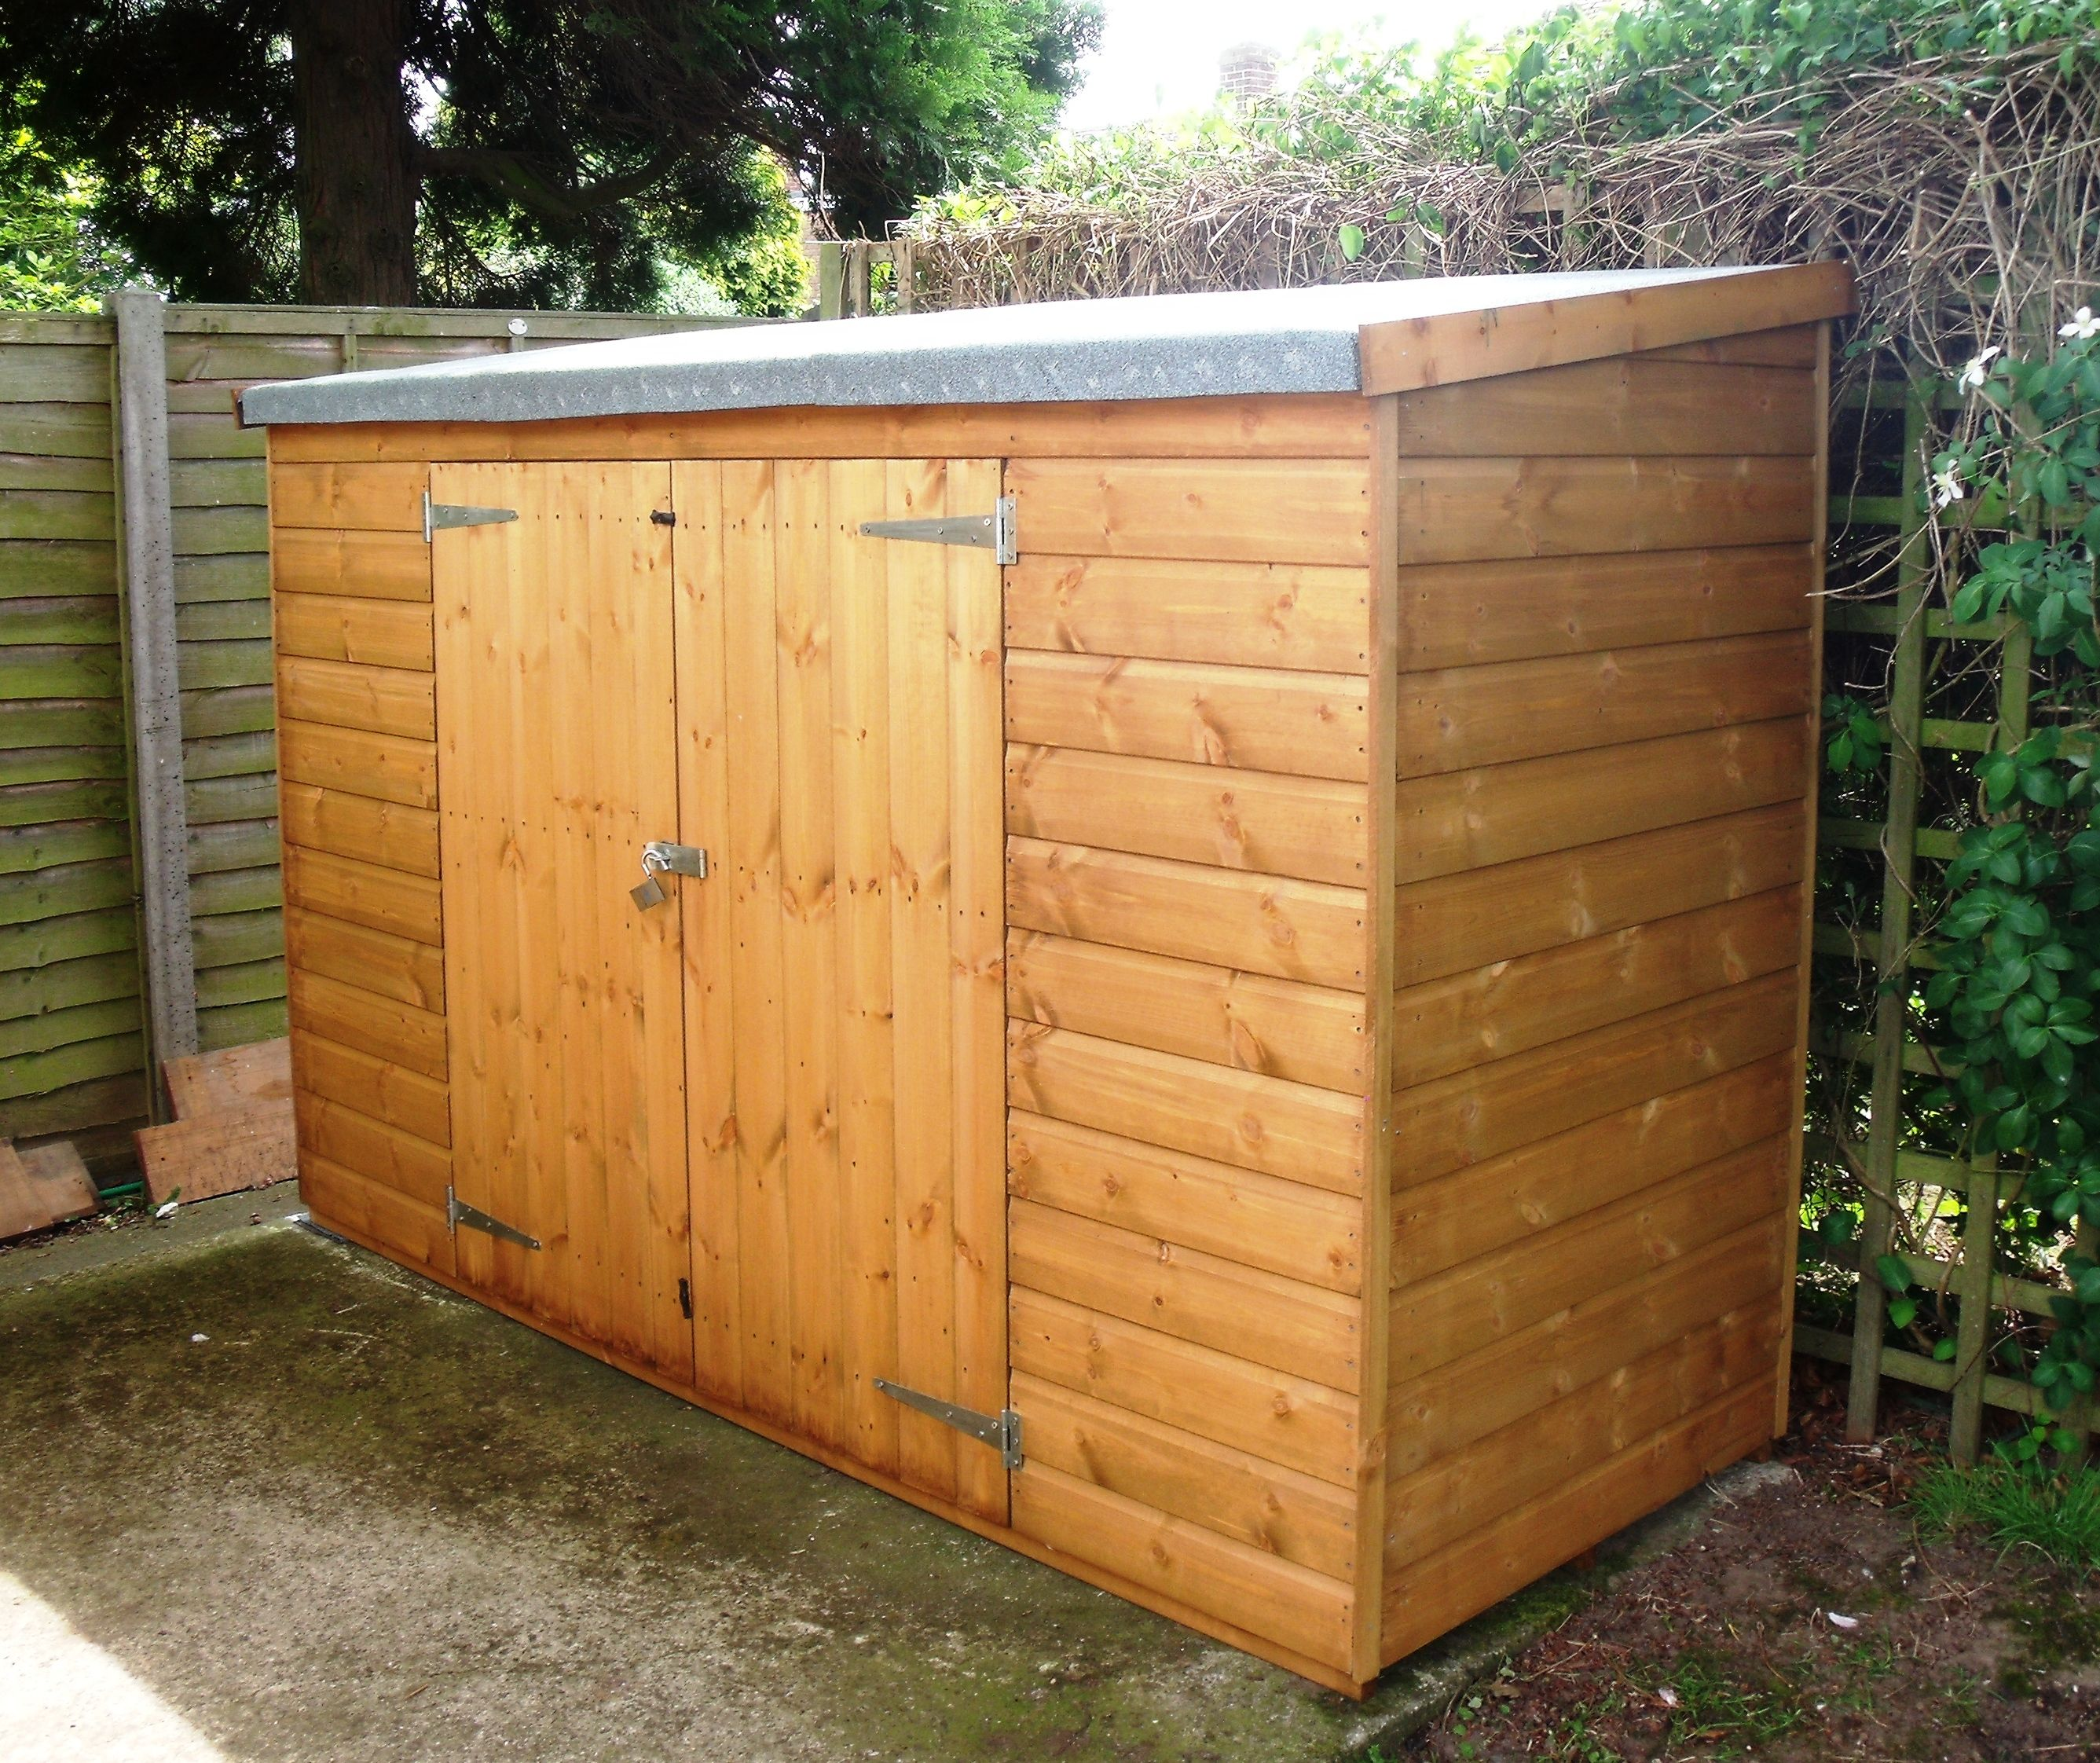 Charmant Beautiful Shed Ideas For Your Garden And Backyard Decorations: Enchanting Wooden  Shed Ideas Small Size With Sloping Roof And Double Main Doors For Inspiring  ...